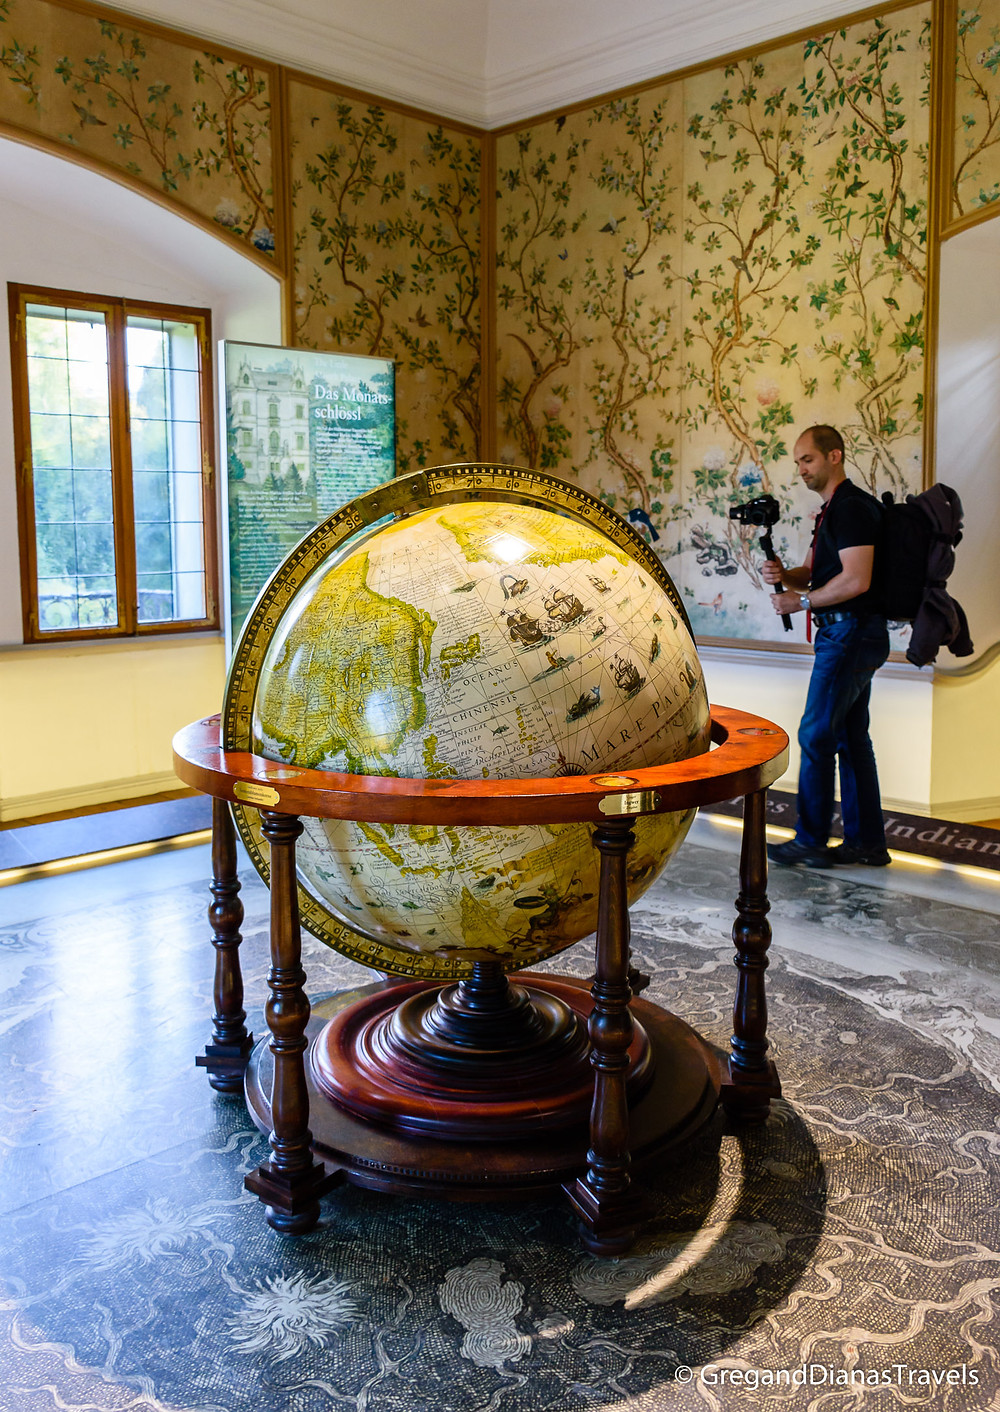 Makart Room, Hellbrunn Castle, Salzburg Austria, Travel blog, Travel photography